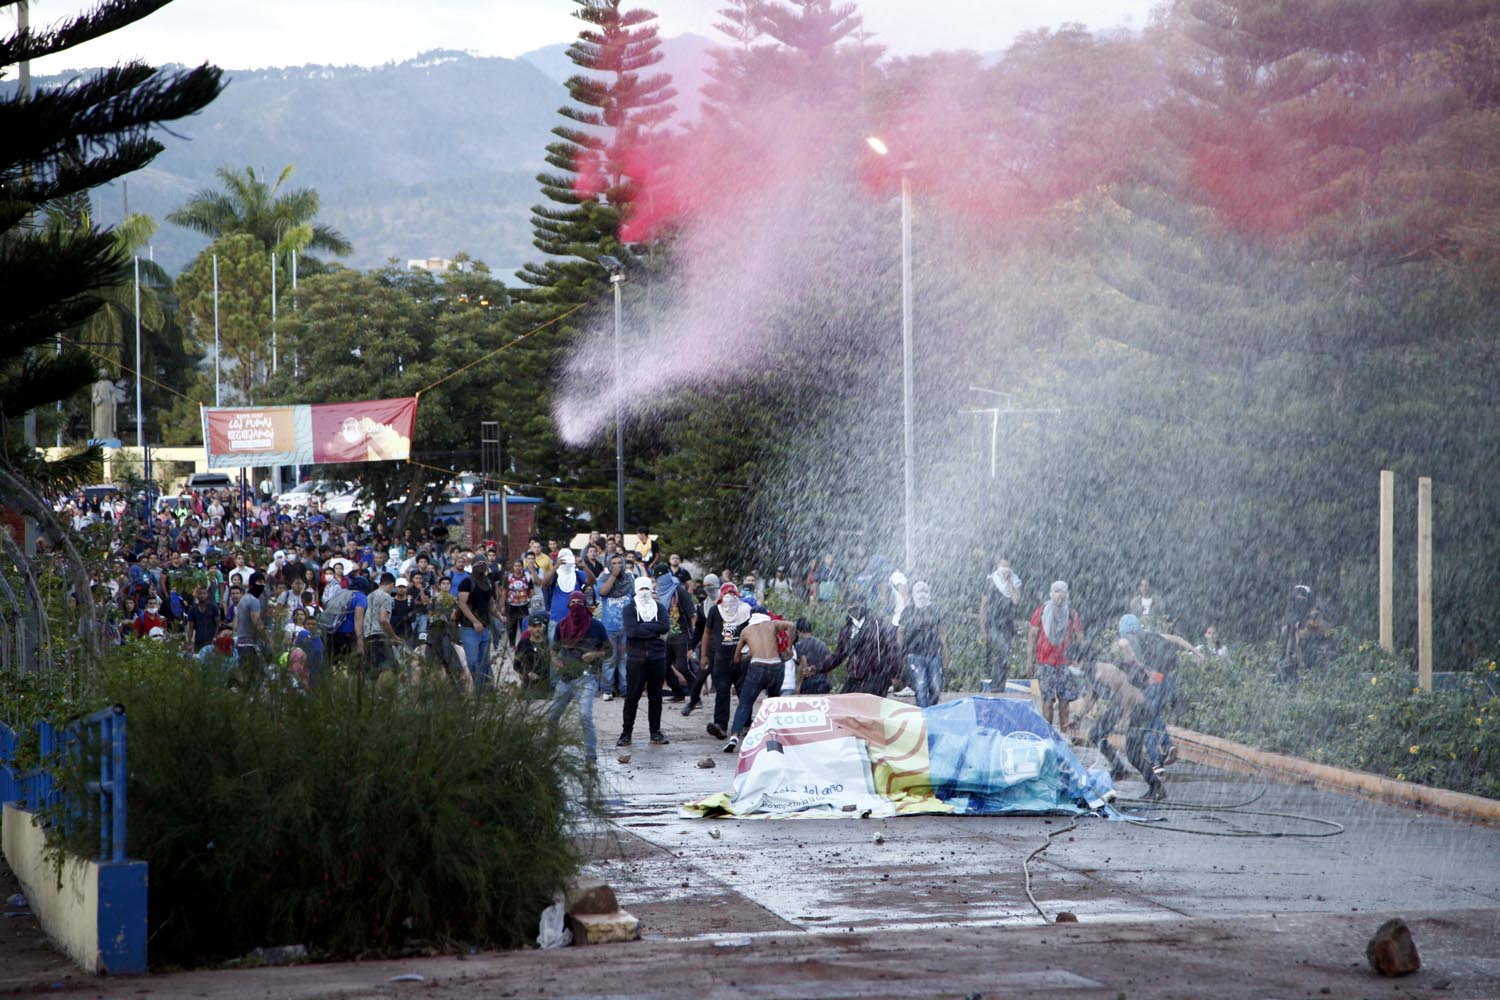 Student Protesters Clash With Police Who Launch Water And Tear Gas At Them In Tegucigalpa Honduras Thursday Feb 9 2017 The Students Are Protesting